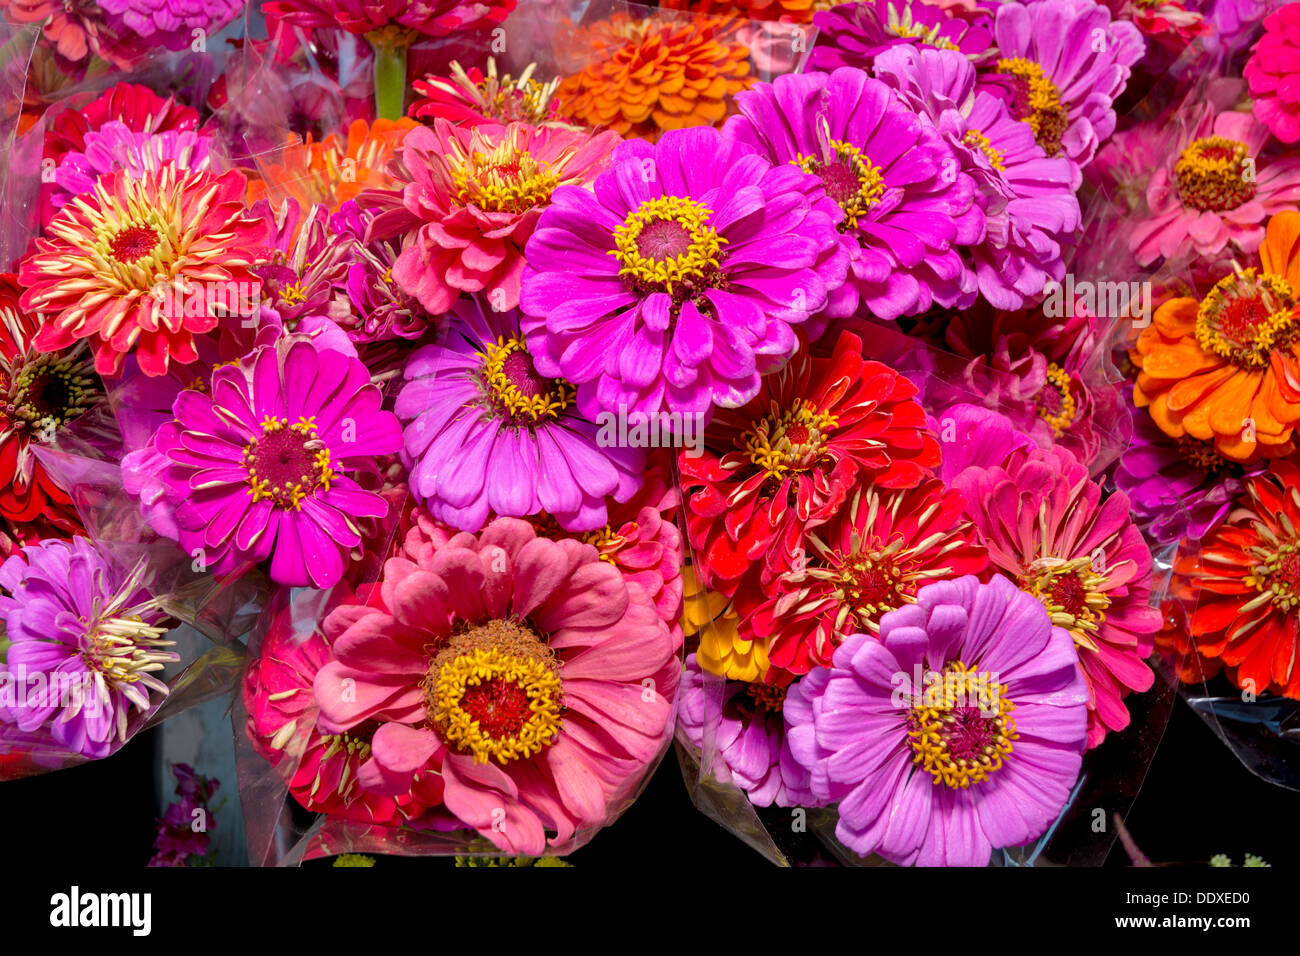 Flowers Wrapped In Cellophane For Sale Stock Photo 60203724